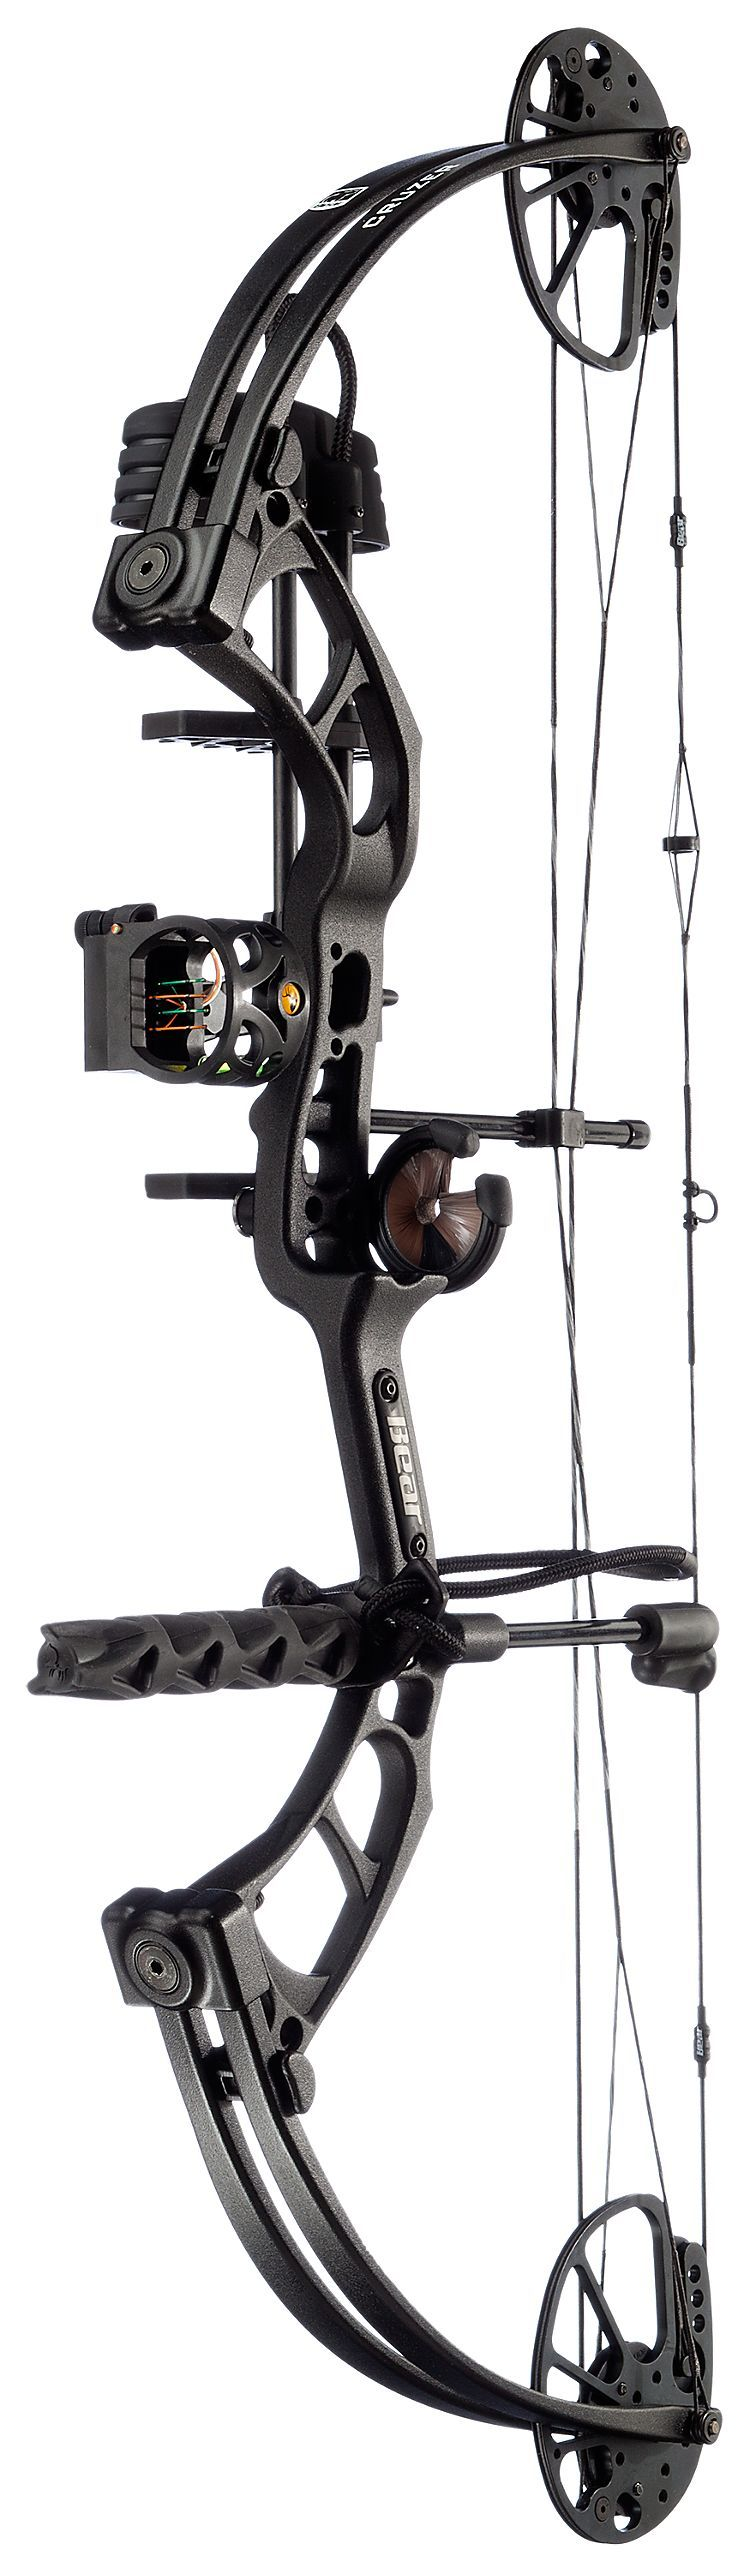 How to Determine What Year a Compound Bow Was Made